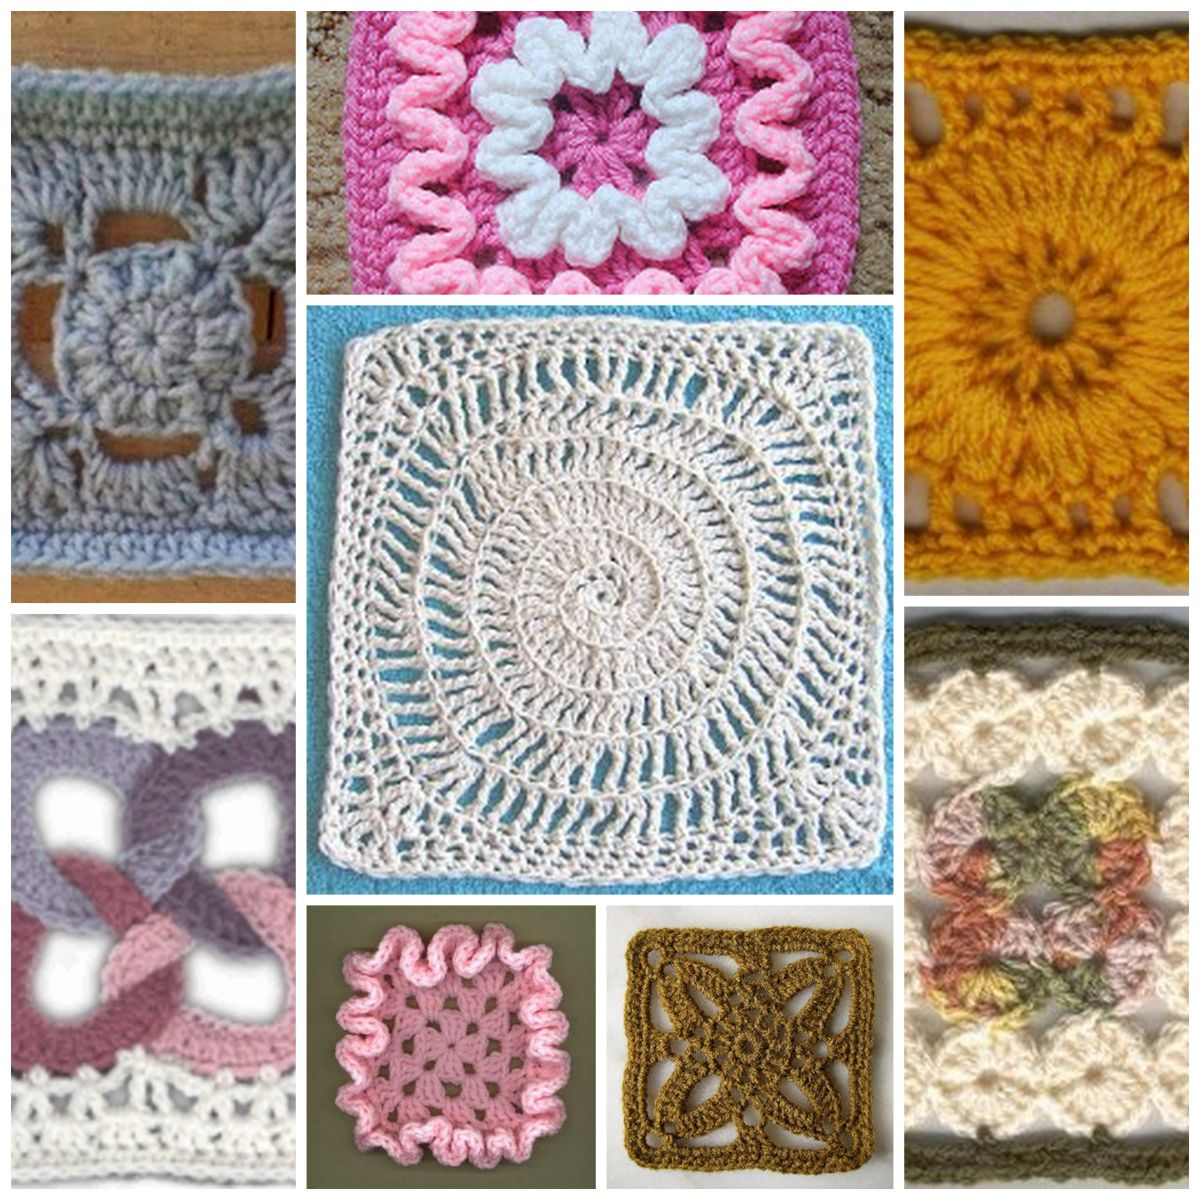 Modern Crochet Patterns : MODERN GRANNY CROCHET AFGHAN PATTERN Easy Crochet Patterns